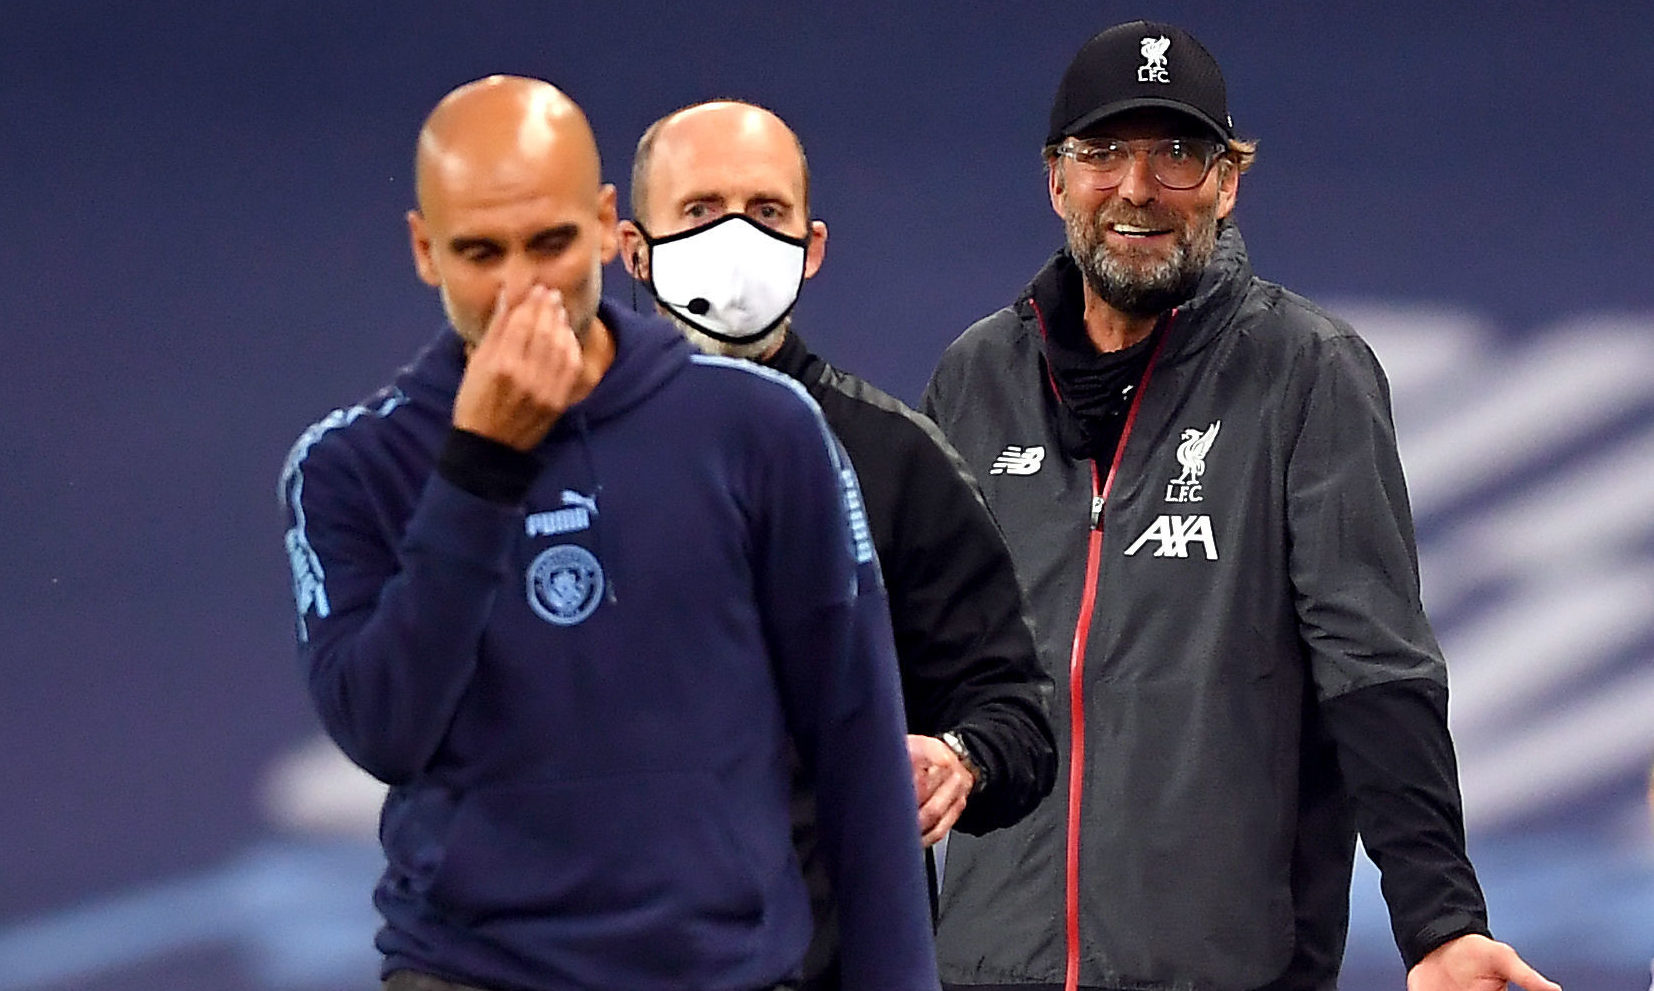 Liverpool manager Jurgen Klopp gestures towards Manchester City manager Pep Guardiola (left) on the touchline.